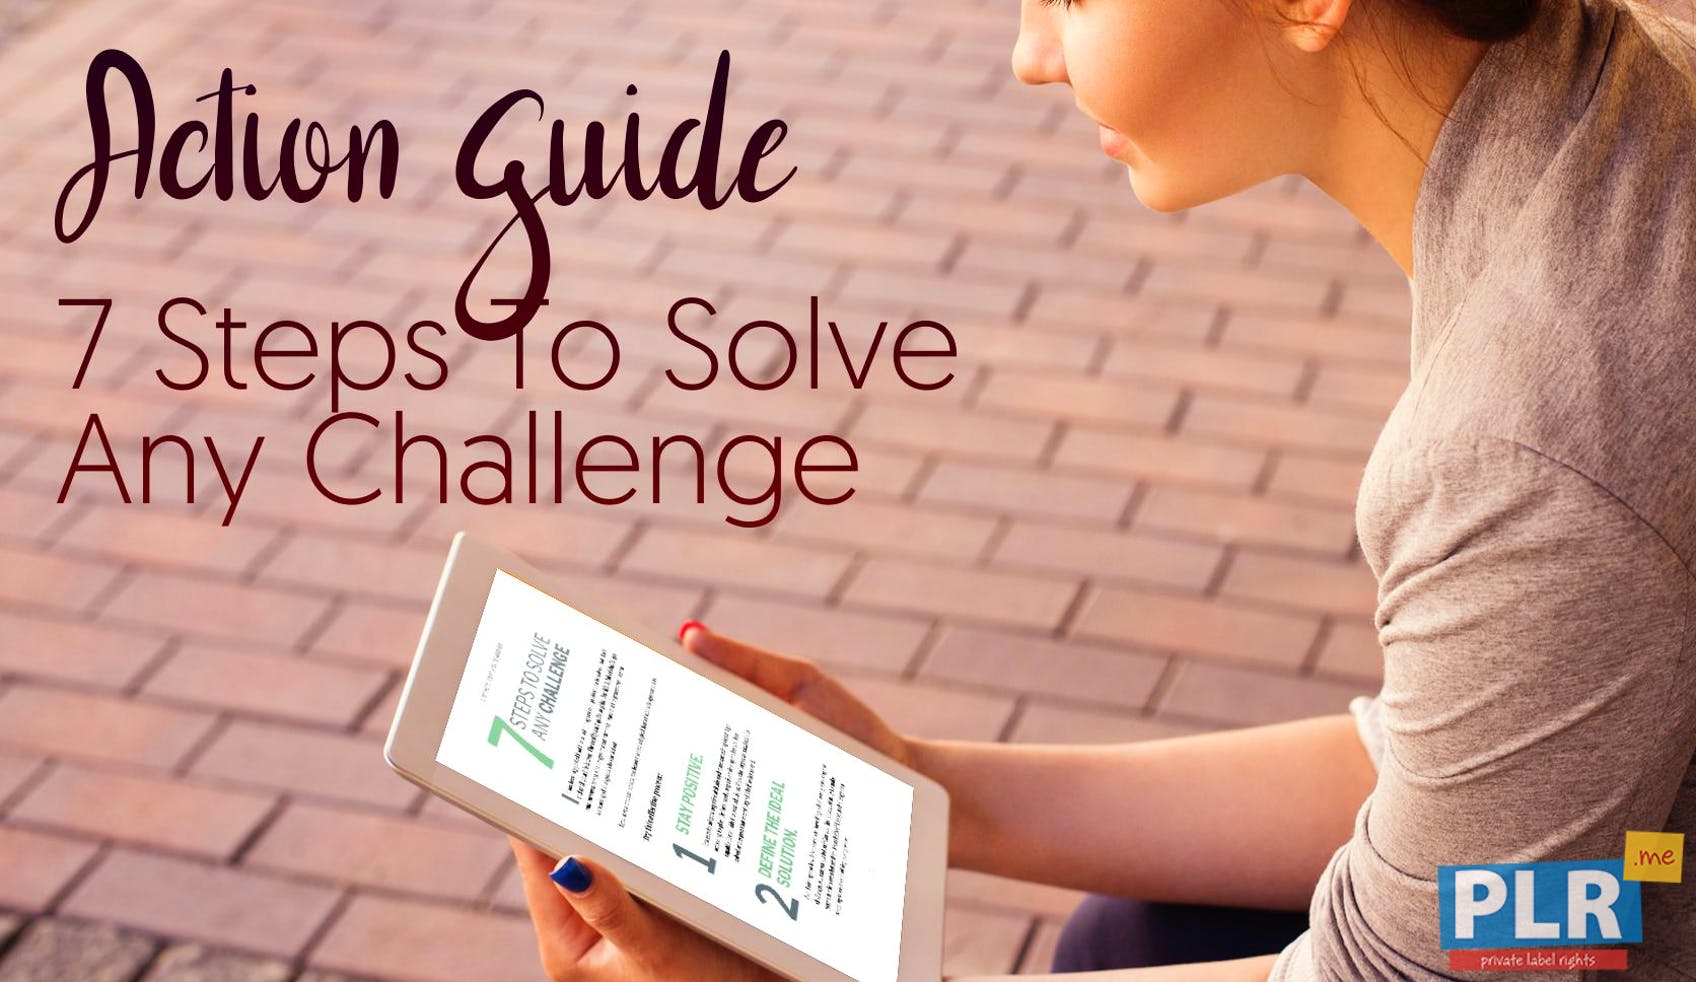 7 Steps To Solve Any Challenge